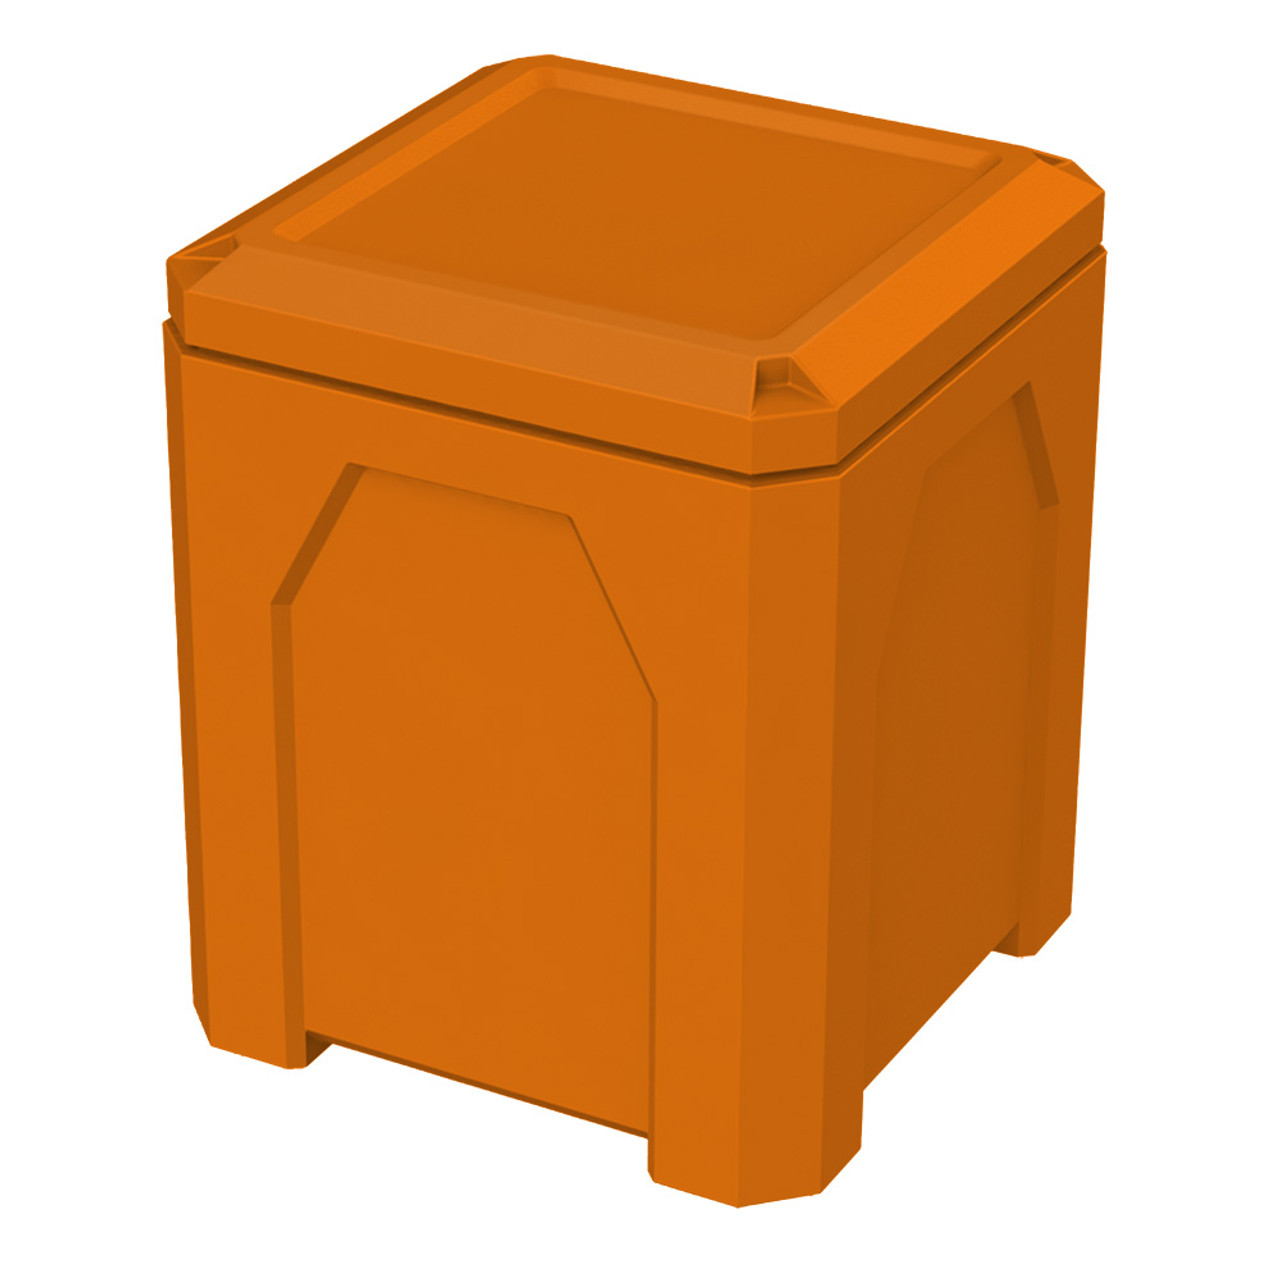 ORANGE NO OPENING DUST COVER